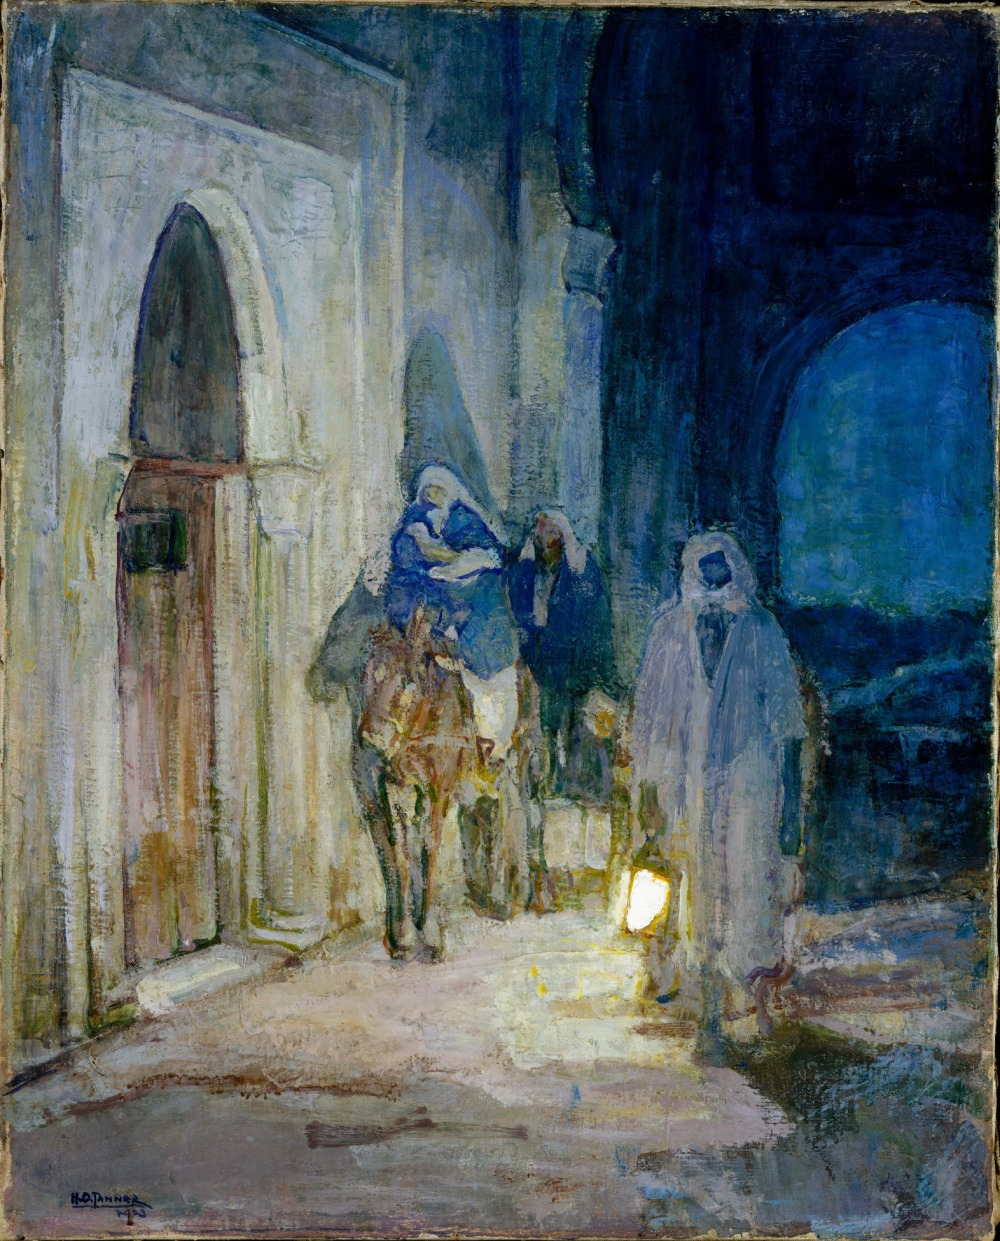 Screenshot_2018-12-24 Henry_Ossawa_Tanner_-_Flight_into_Egypt_(1923) jpg (JPEG Image, 2876 × 3571 pixels) - Scaled (27%)